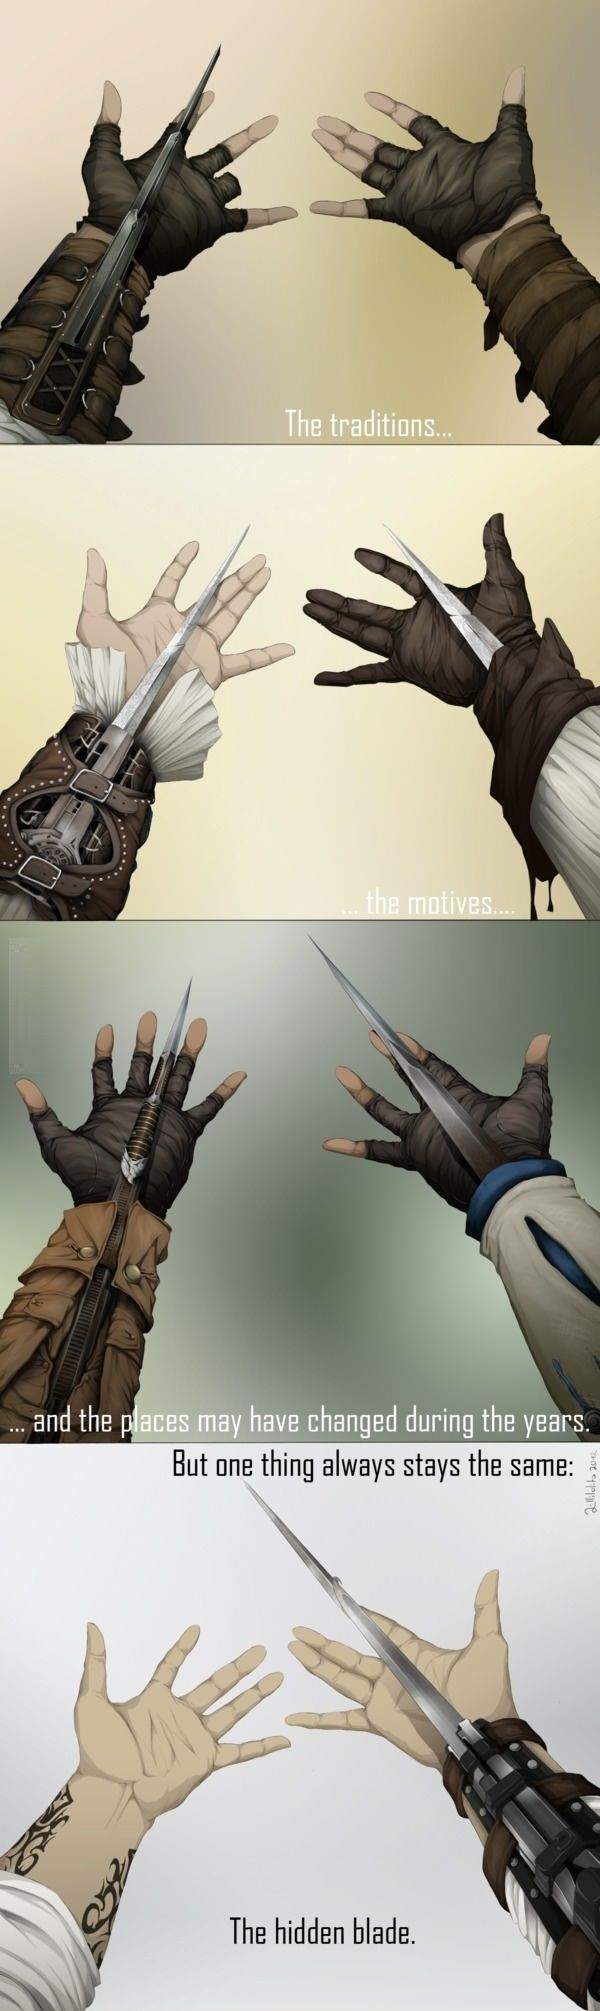 Assassin's Creed Hidden Blade Tribute